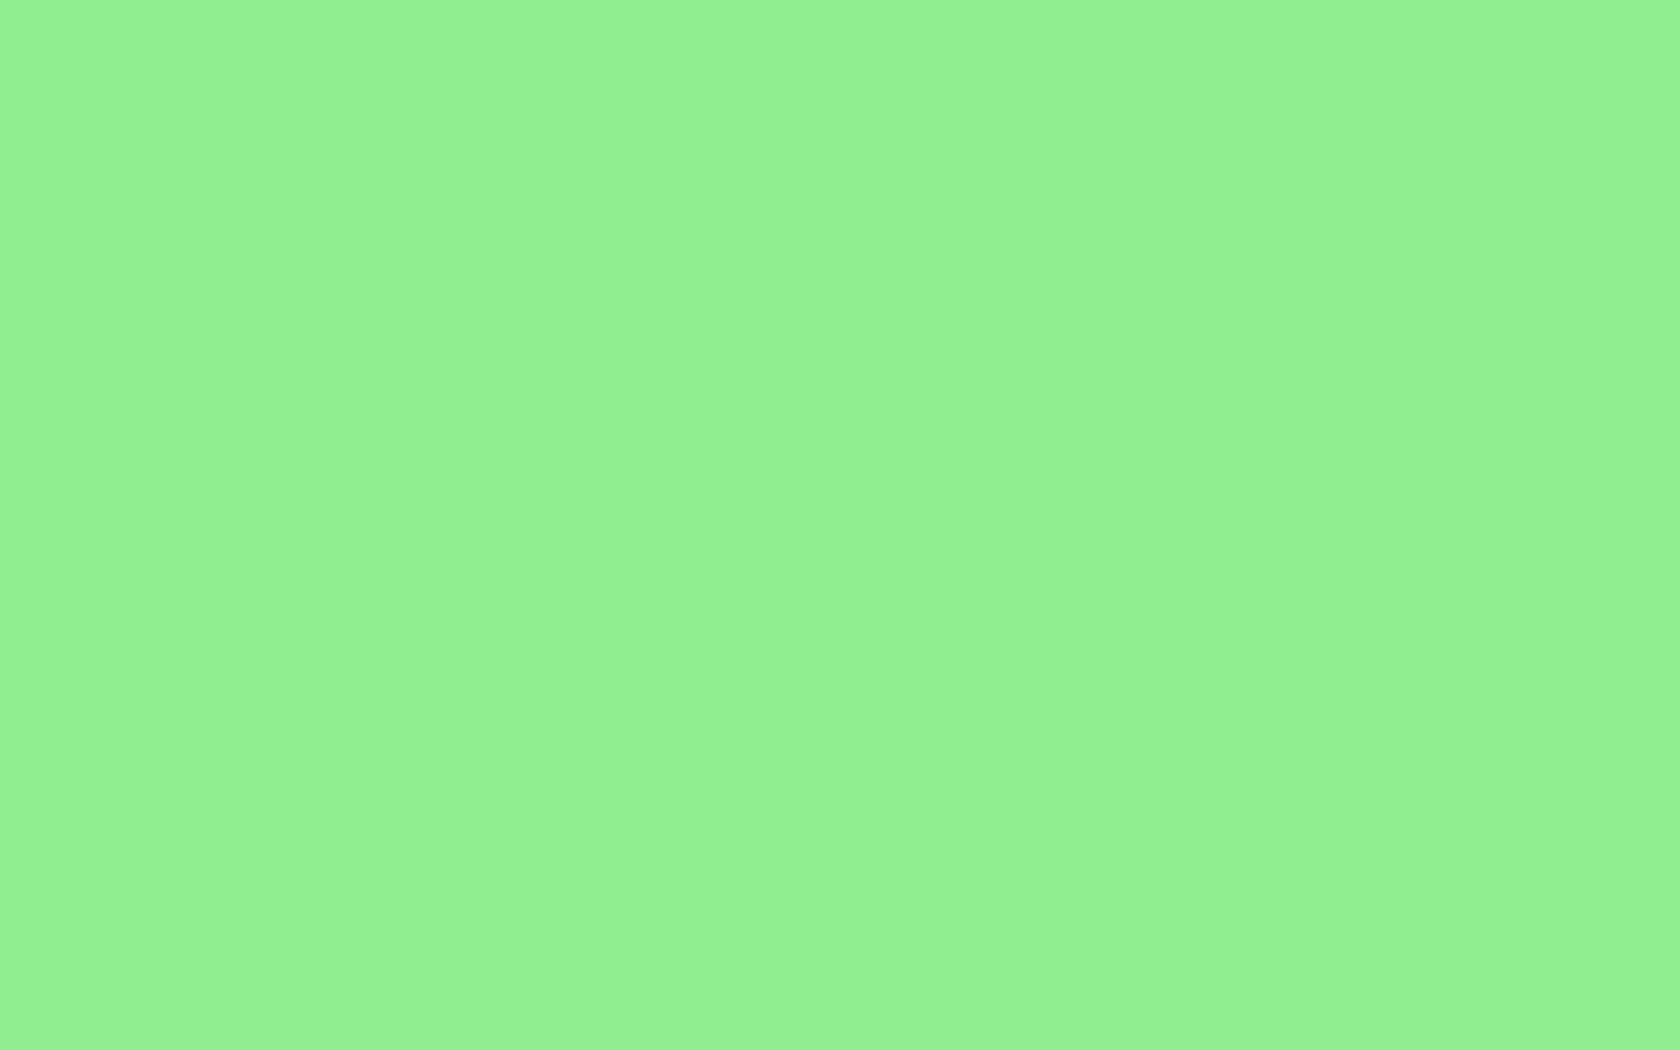 1680x1050 Light Green Solid Color Background